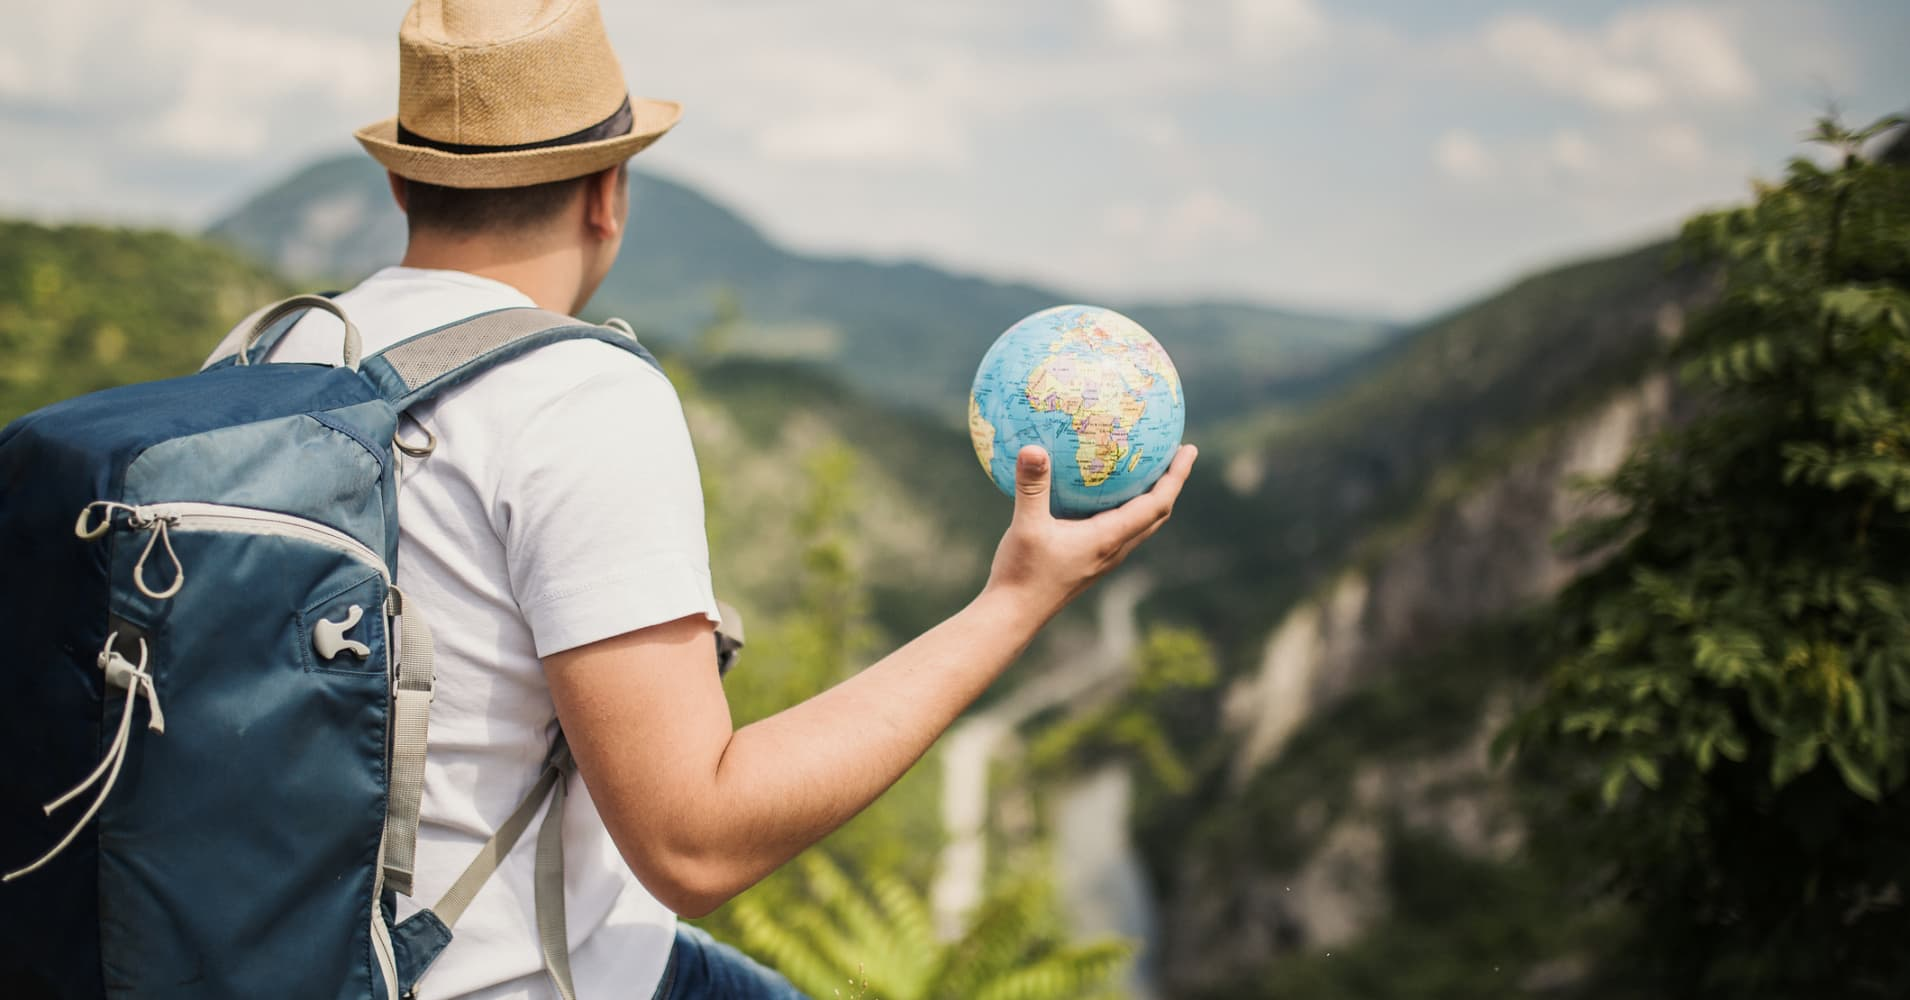 Apply for this job and travel the world as part of the interview falaconquin